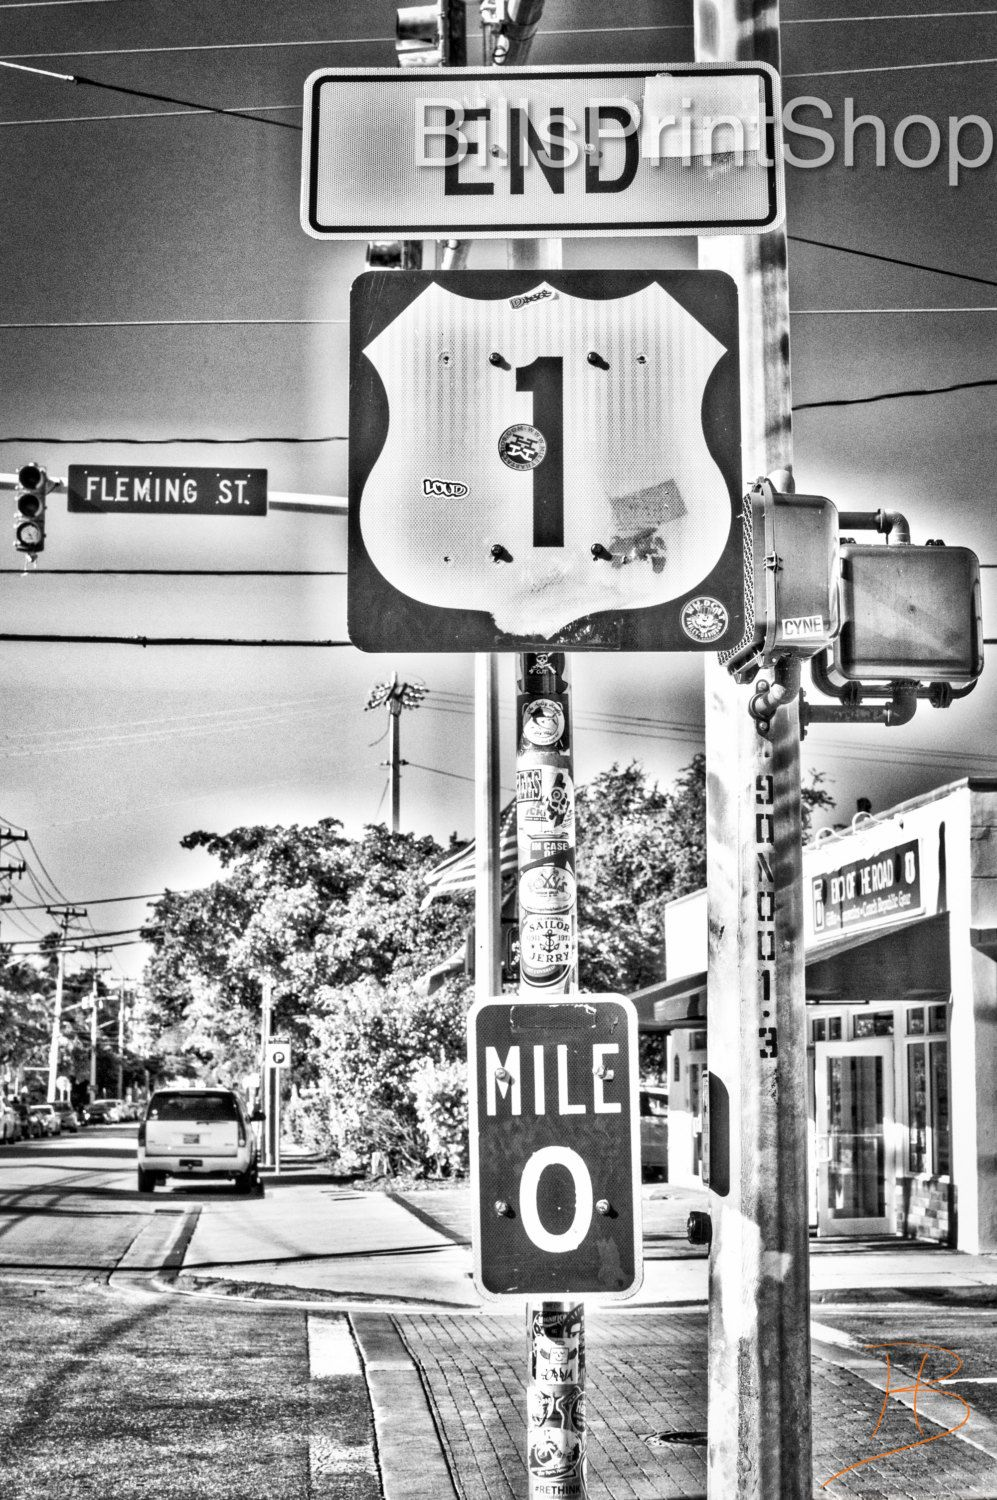 End of the road key west florida street destination music